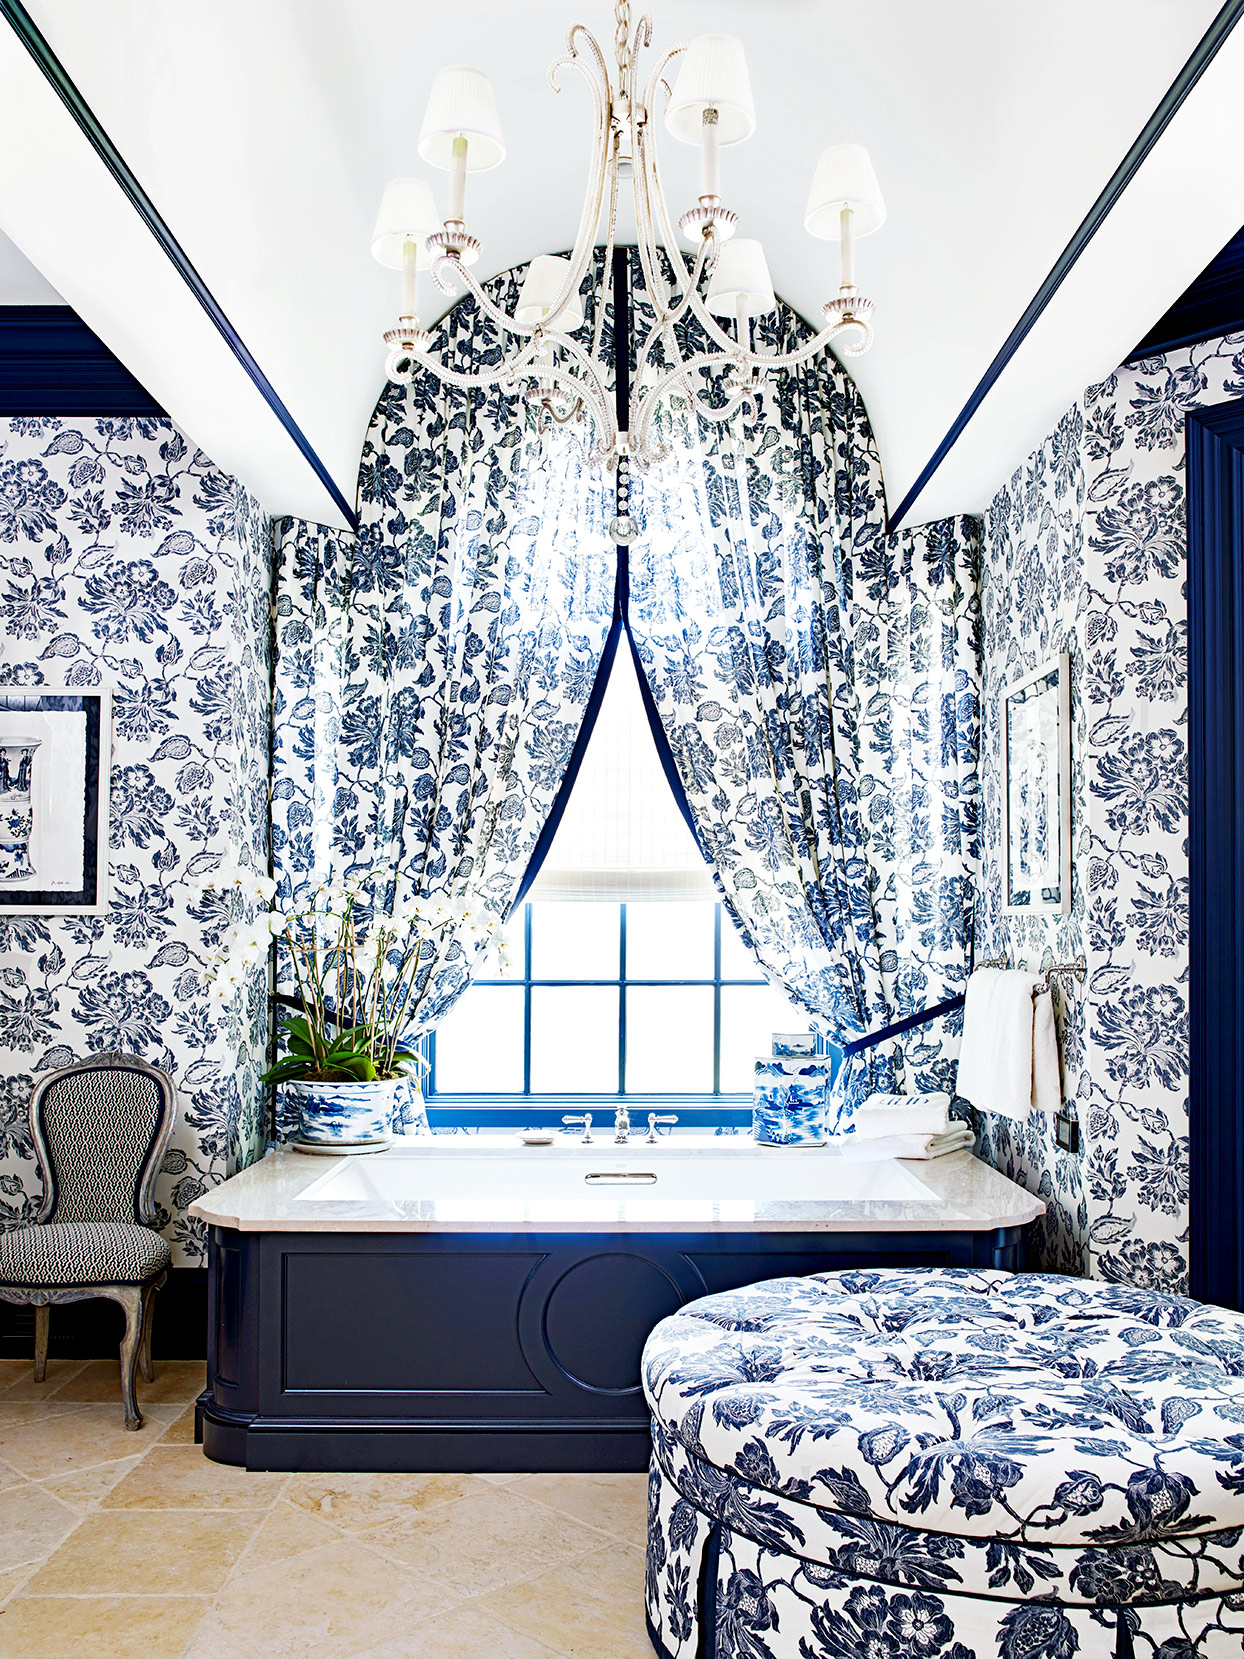 bathroom with floral white and blue details